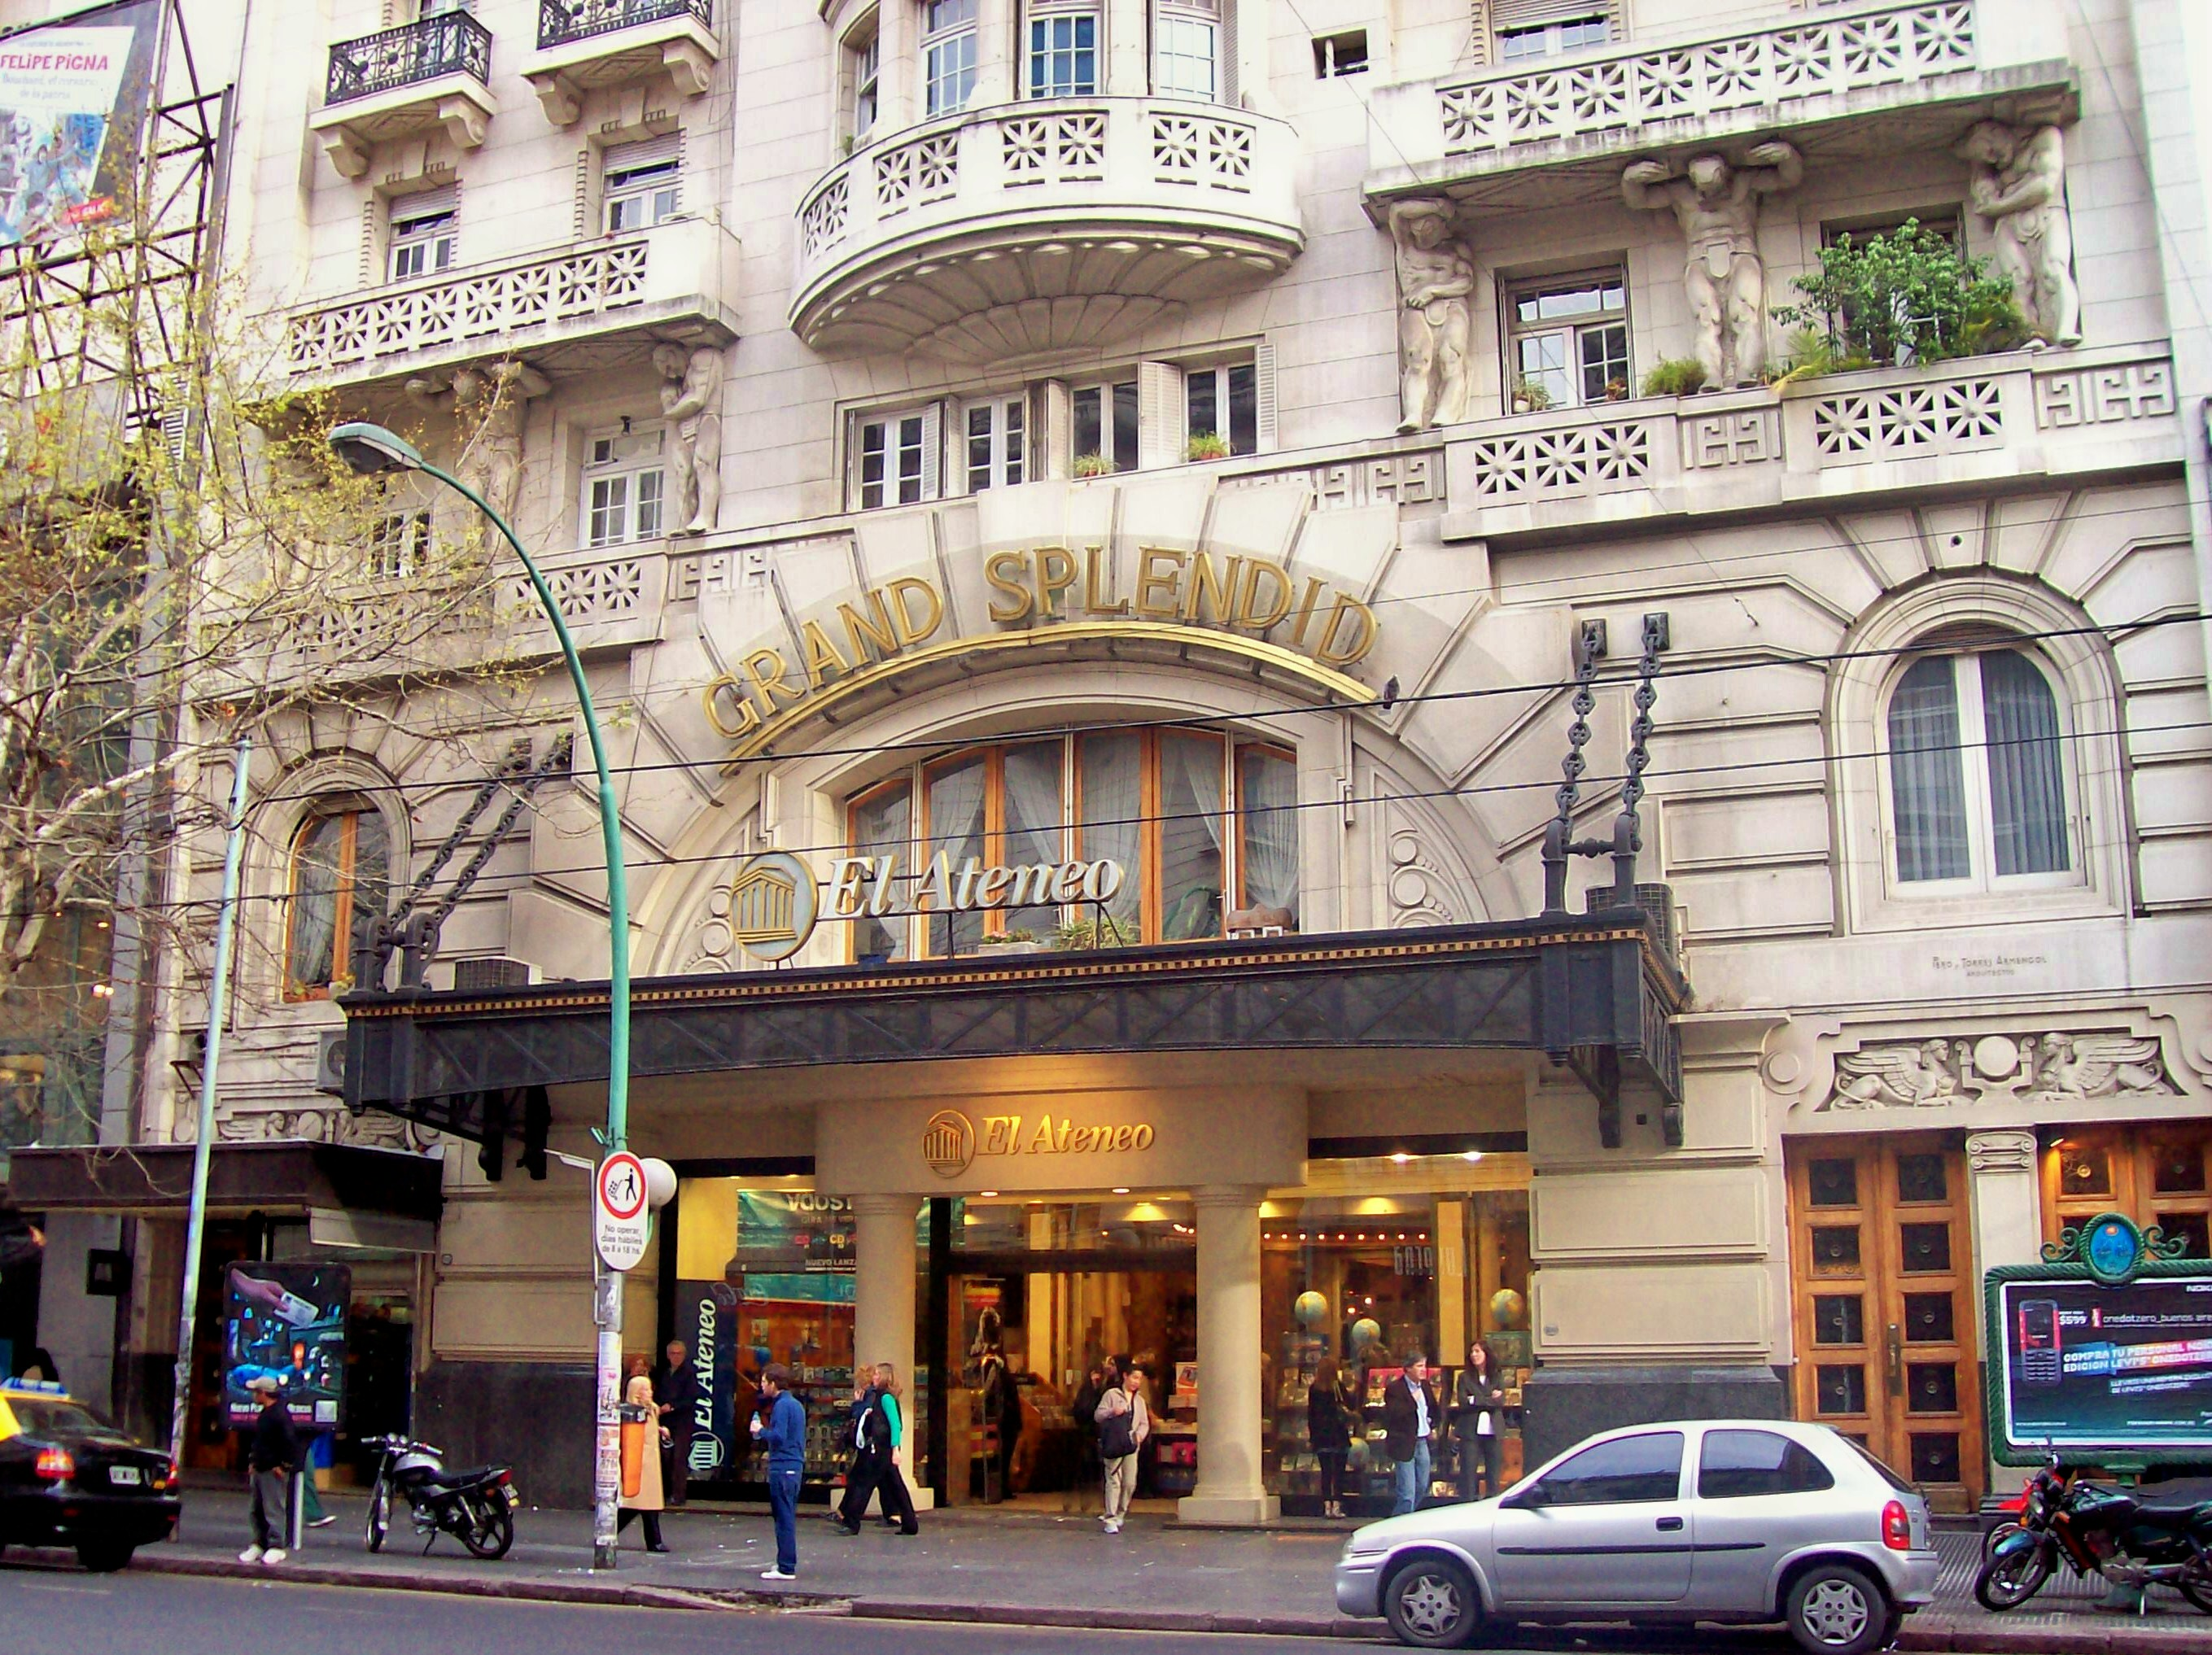 El Ateneo Grand Splendid - Wikipedia